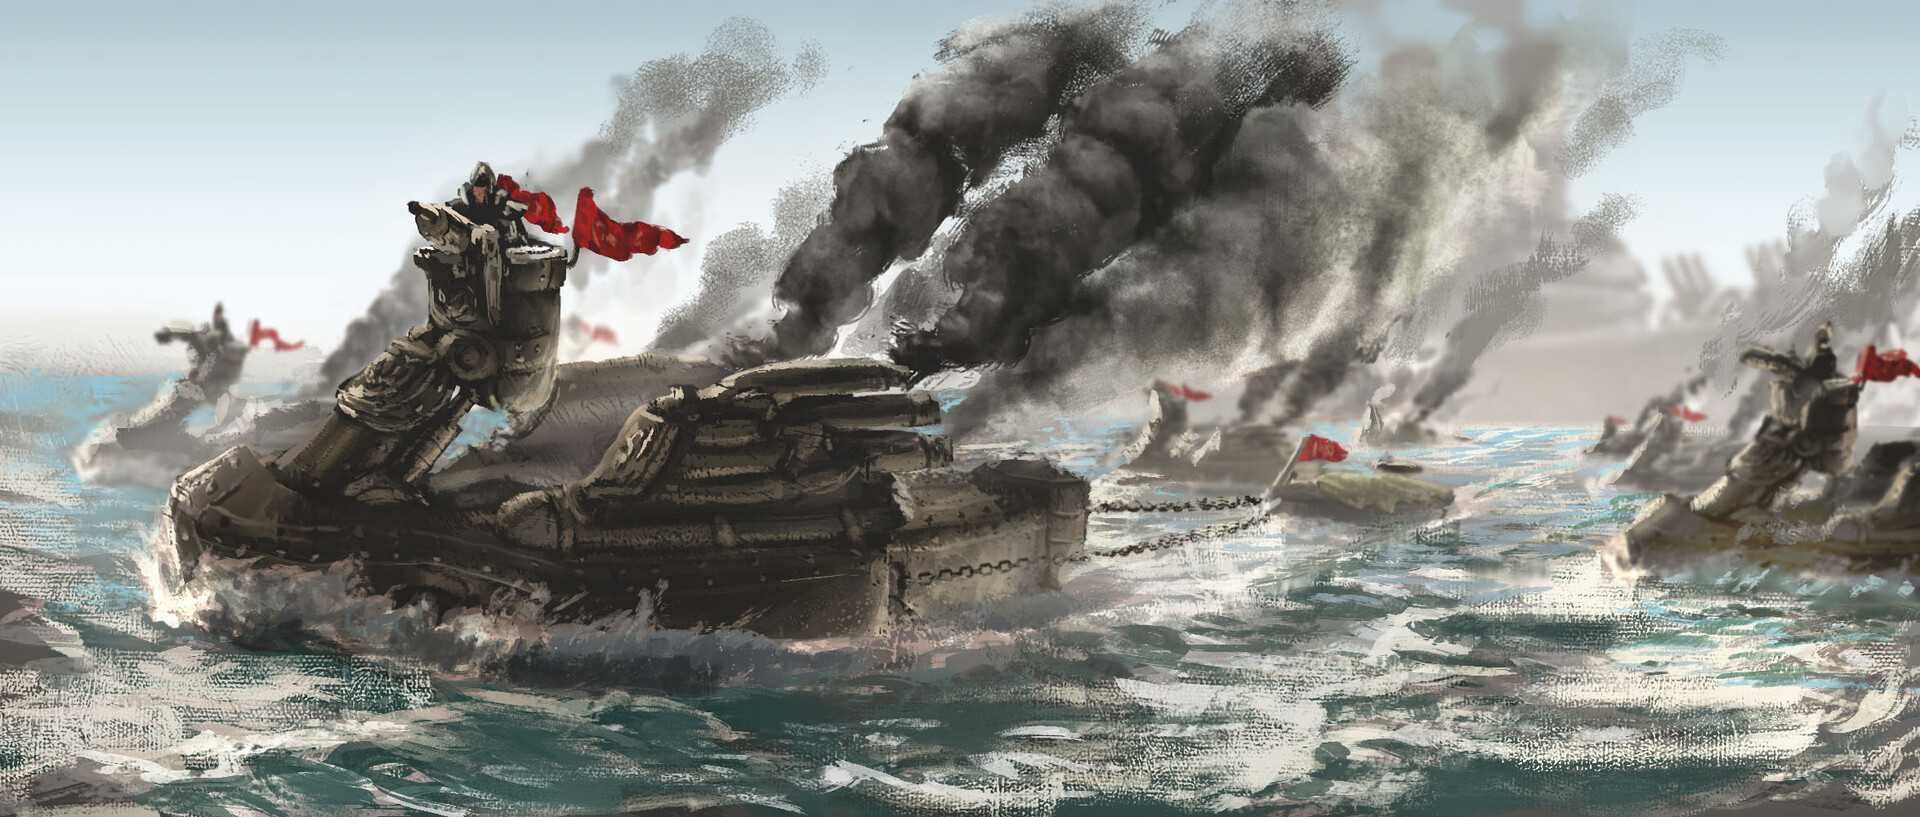 Technique Test: Amphibious Steamtanks  Last Saturday morning was just perfect for another stab at my paintifying technique. This one leaned on the recent photo study 'Flotilla'.